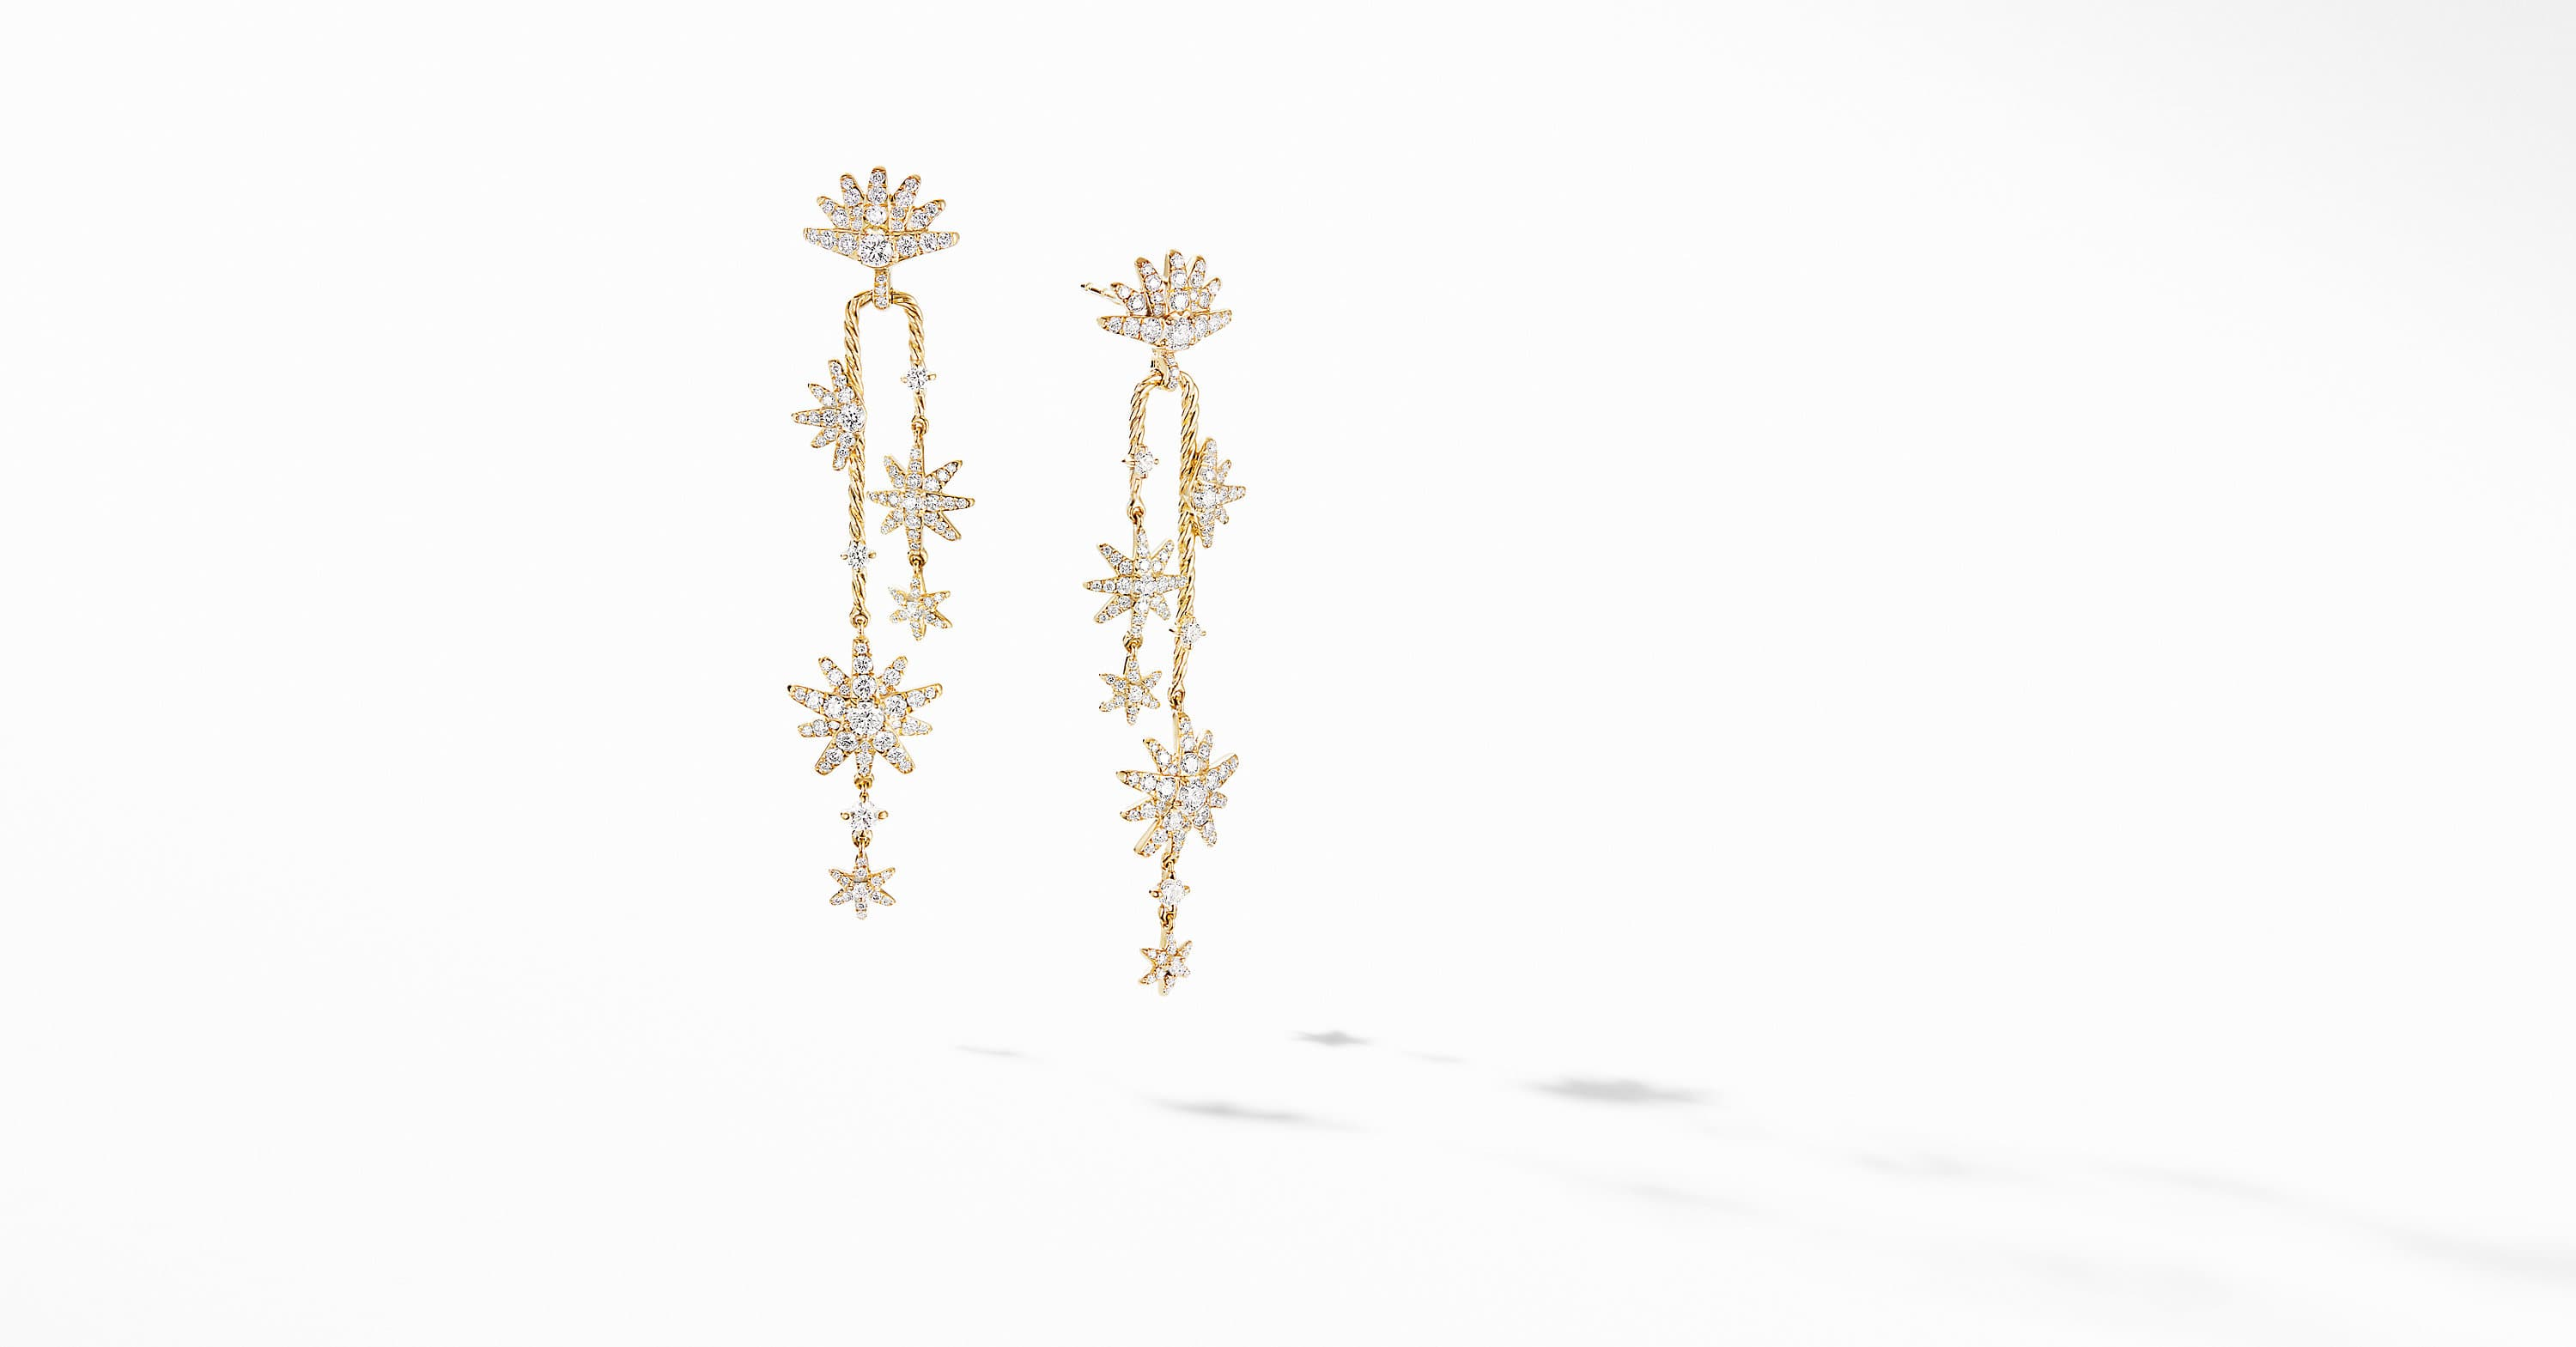 Starburst Cascade Earrings in 18K Yellow Gold with Pavé